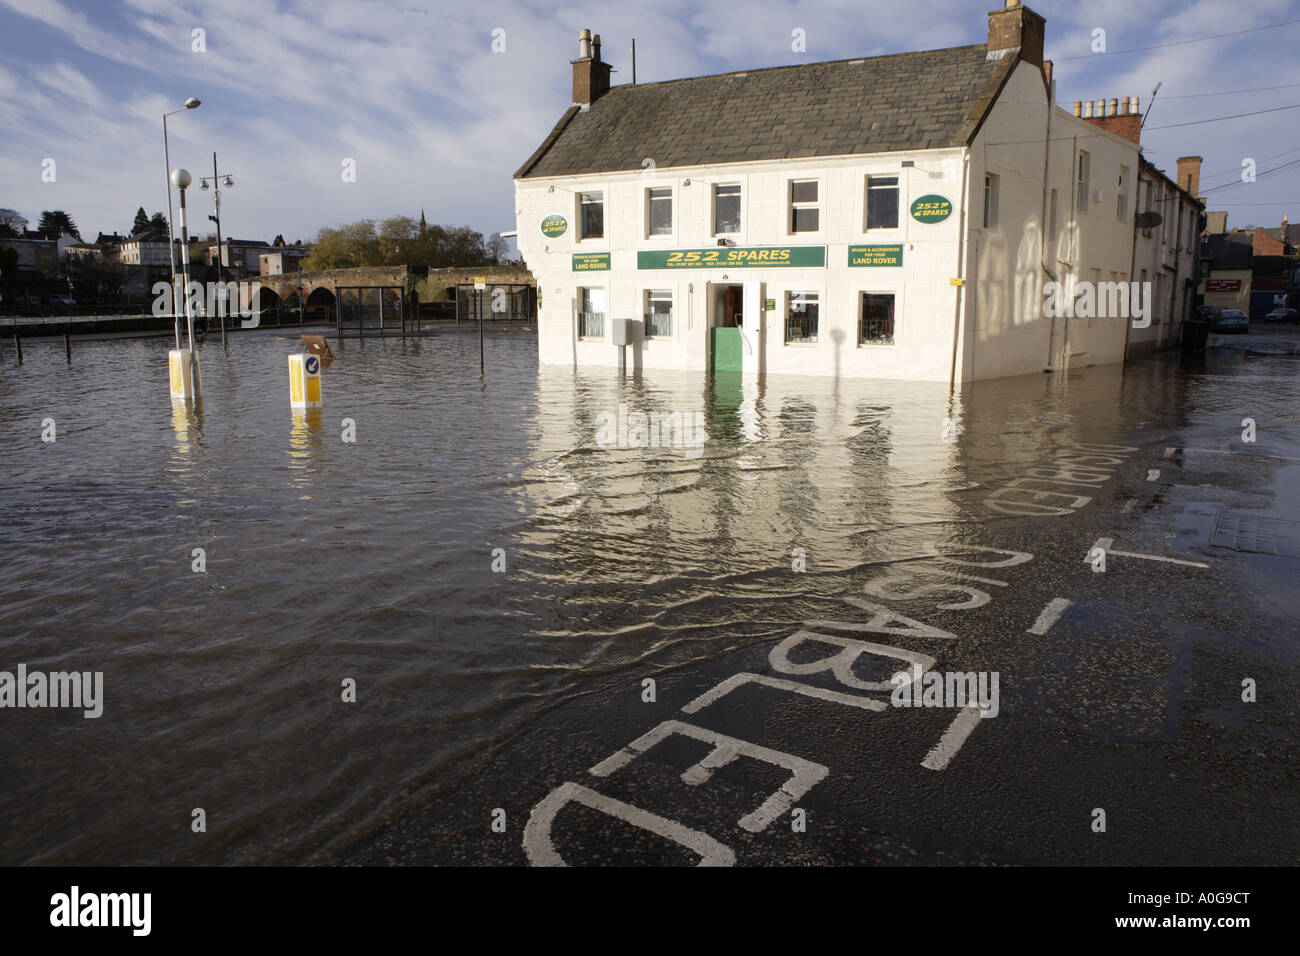 flooded winter flood business underwater river nith bursting its